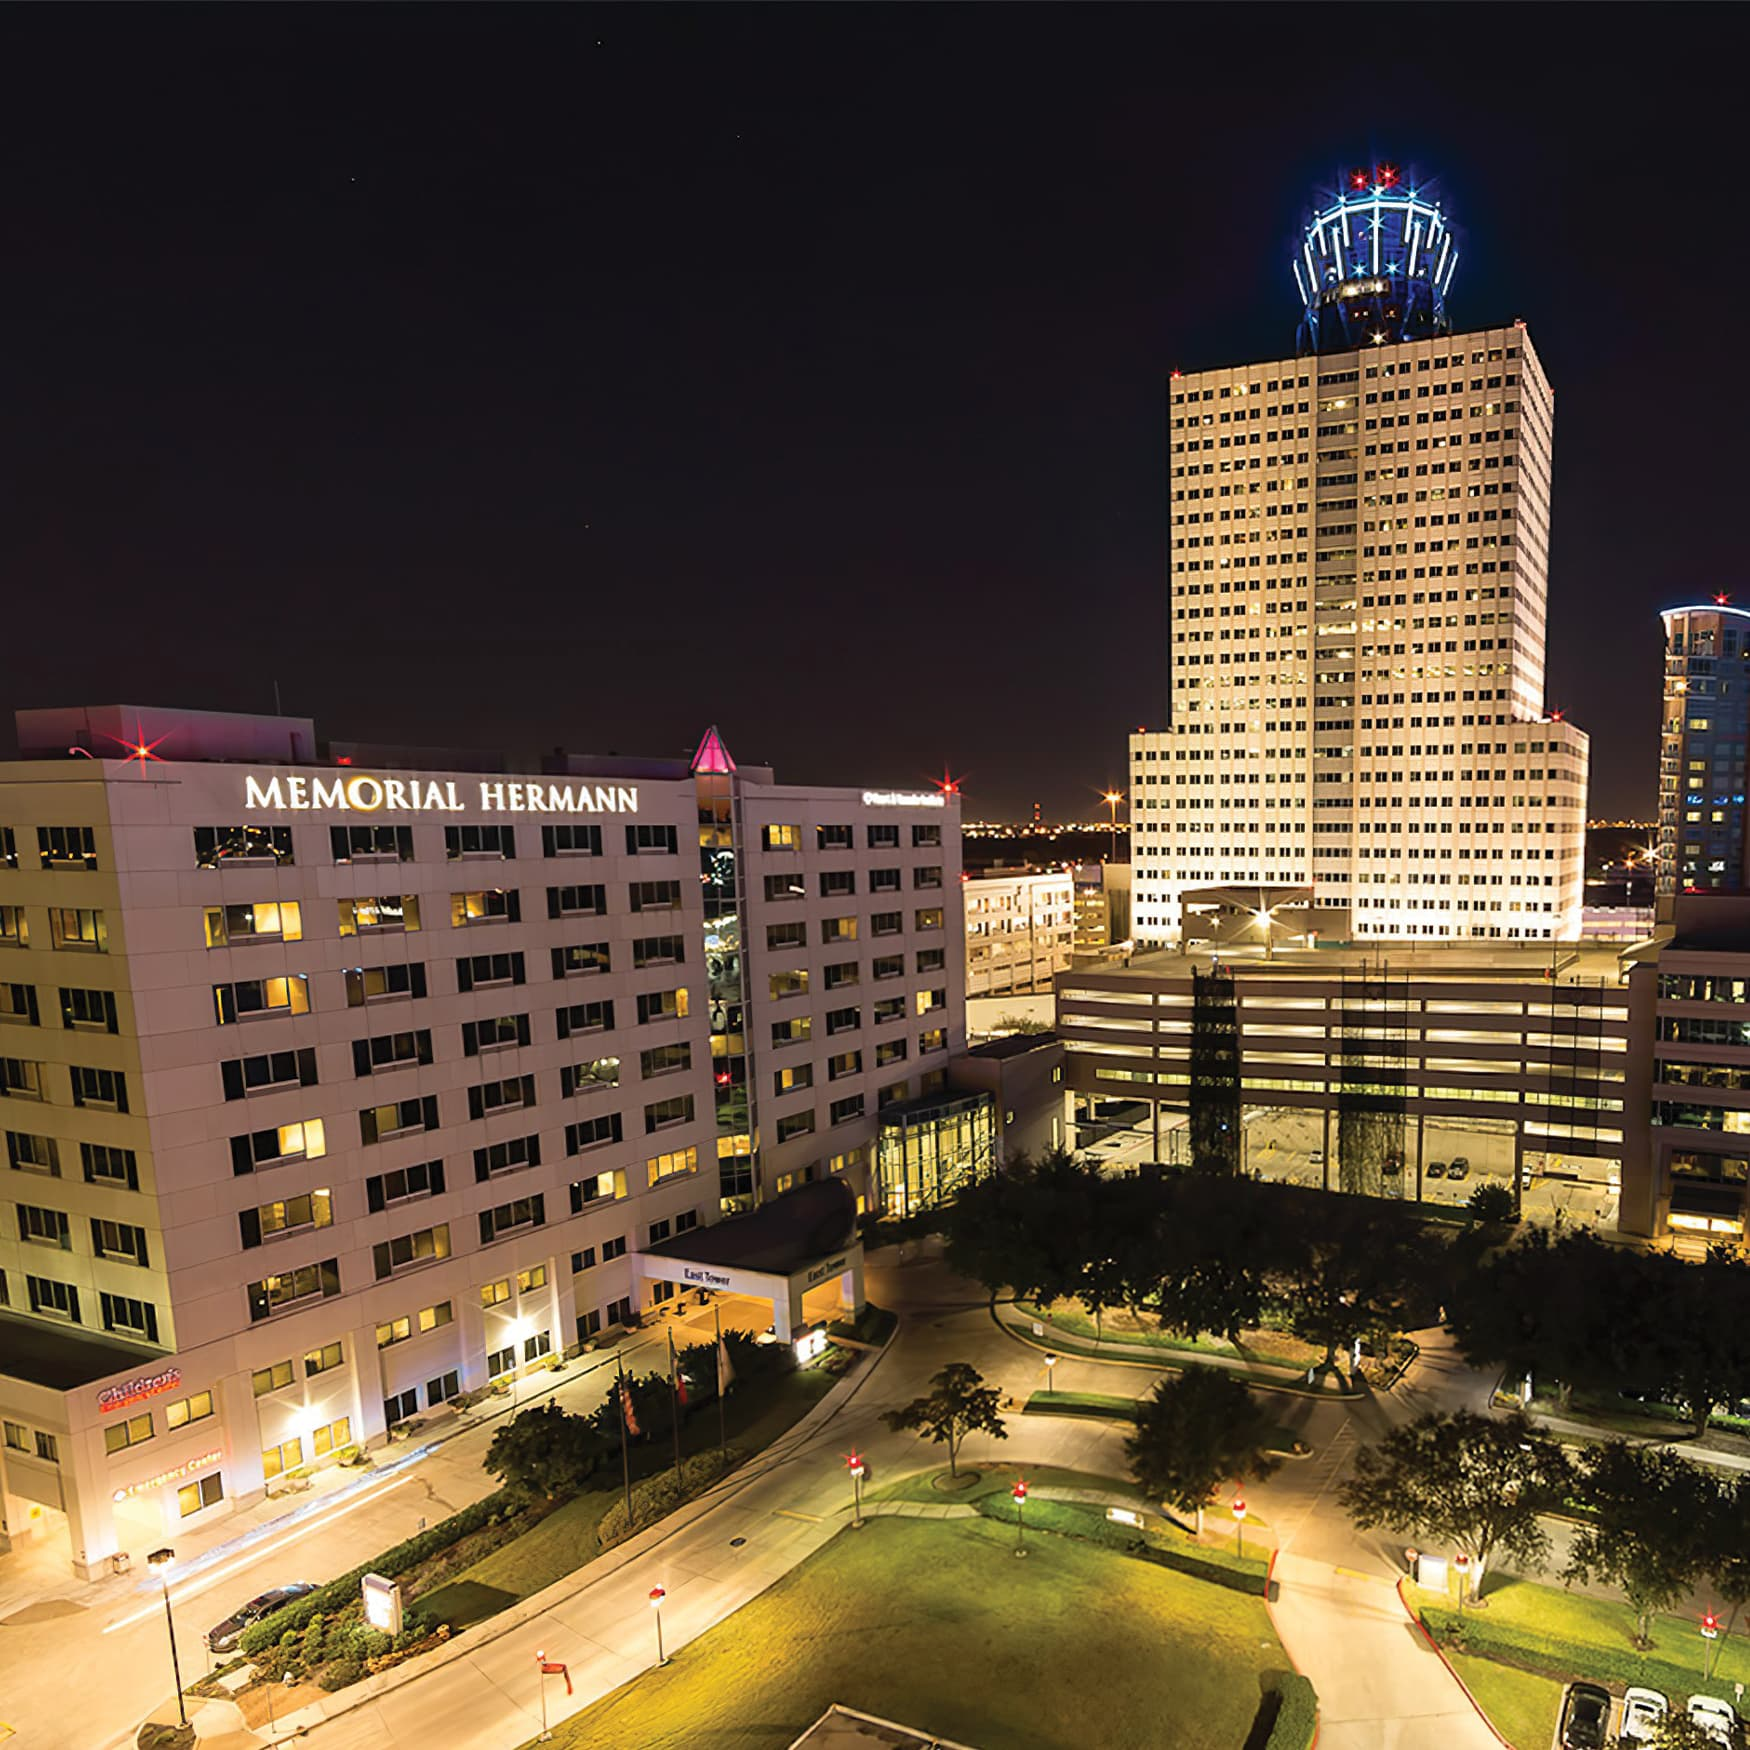 A nighttime photograph of the Memorial Hermann campus.